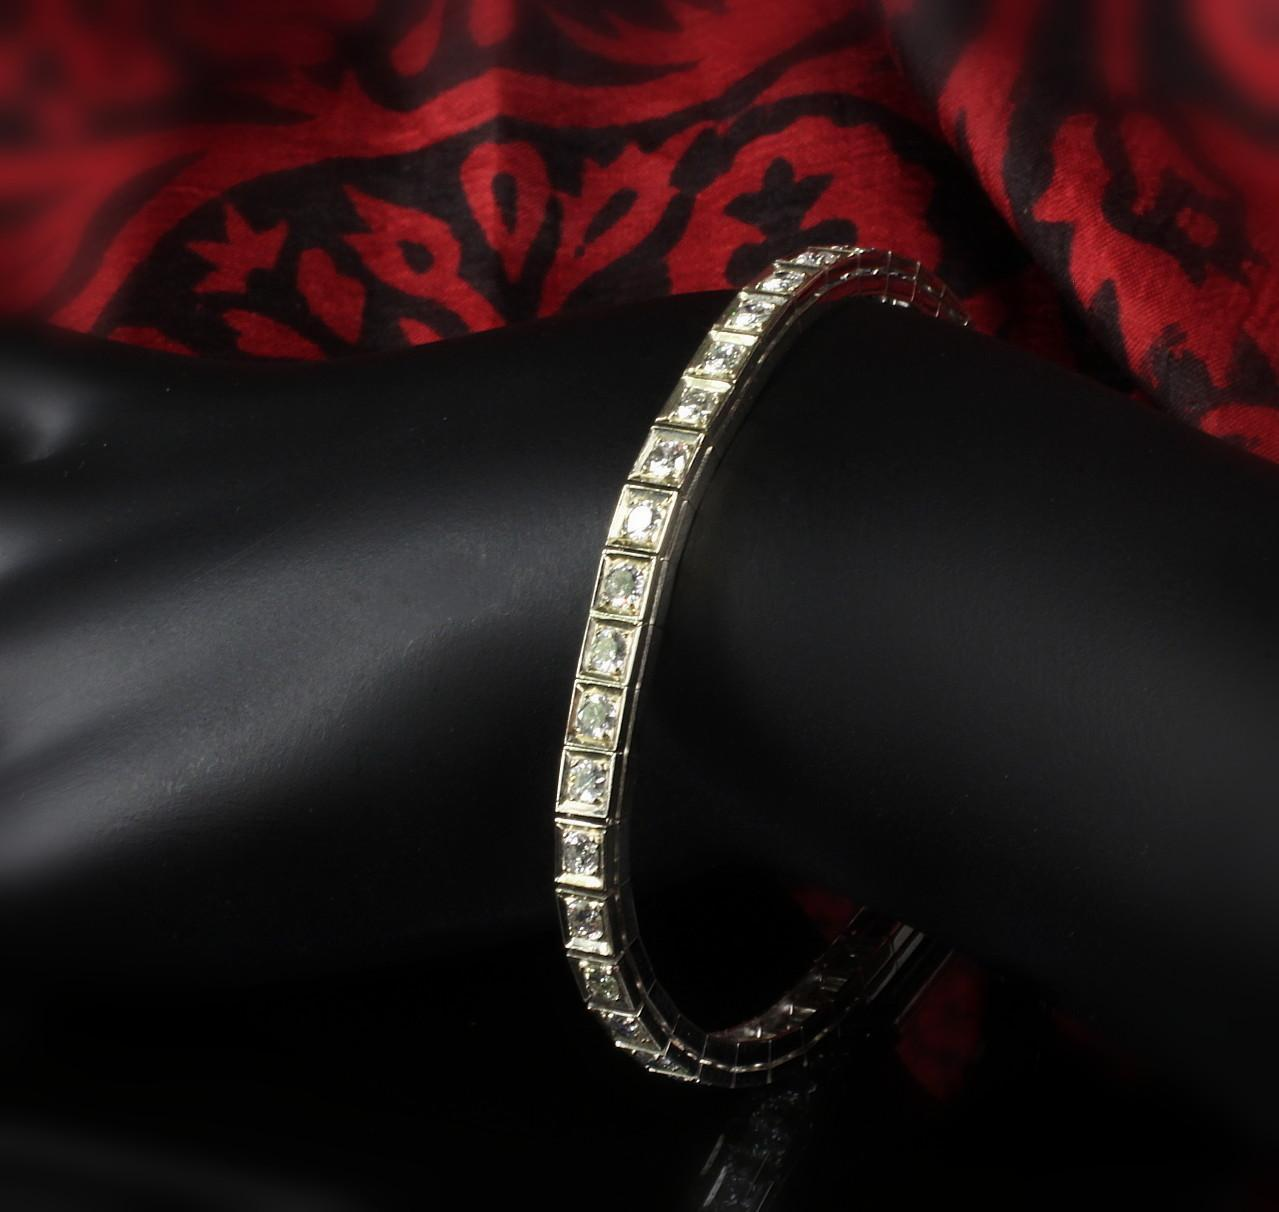 14K White Gold 4.0 Carat Add -a- Diamond Bracelet